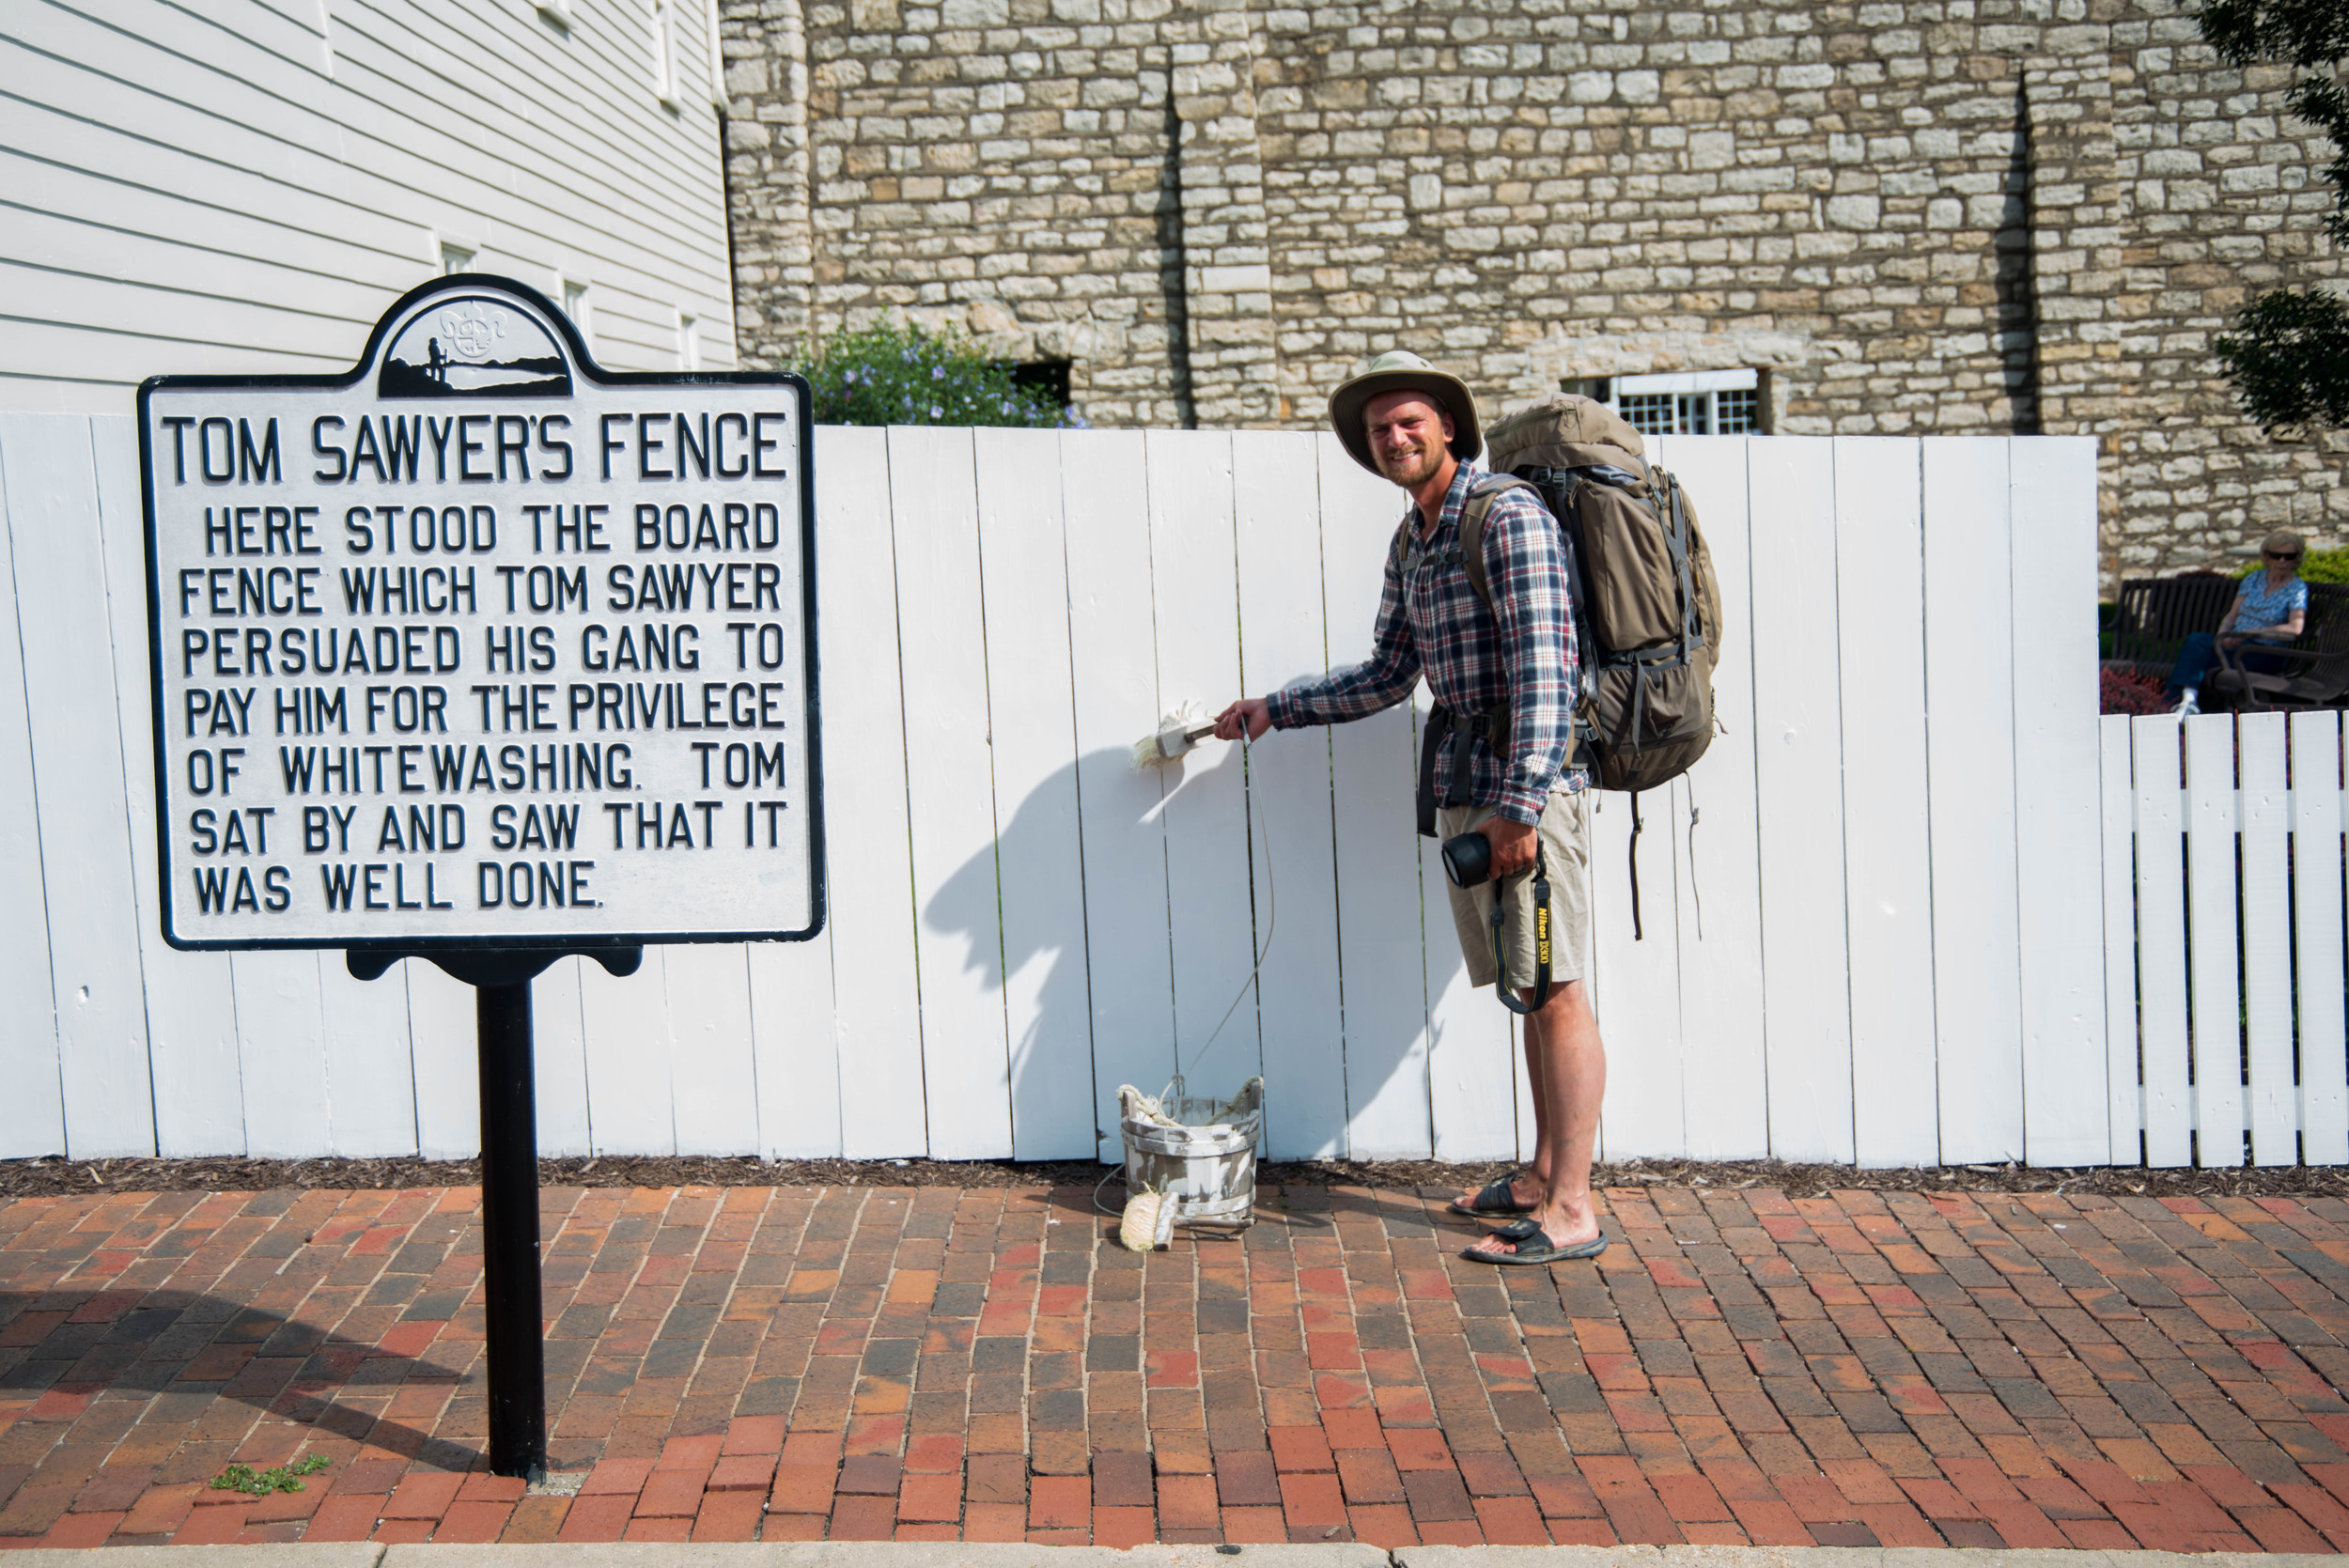 Stopping for a spell in Hannibal, Missouri, the hometown of Mark Twain, was one of the most memorable times of our trip. A chance to stretch ones legs in a river town rich in history was something Will and I both lept at.